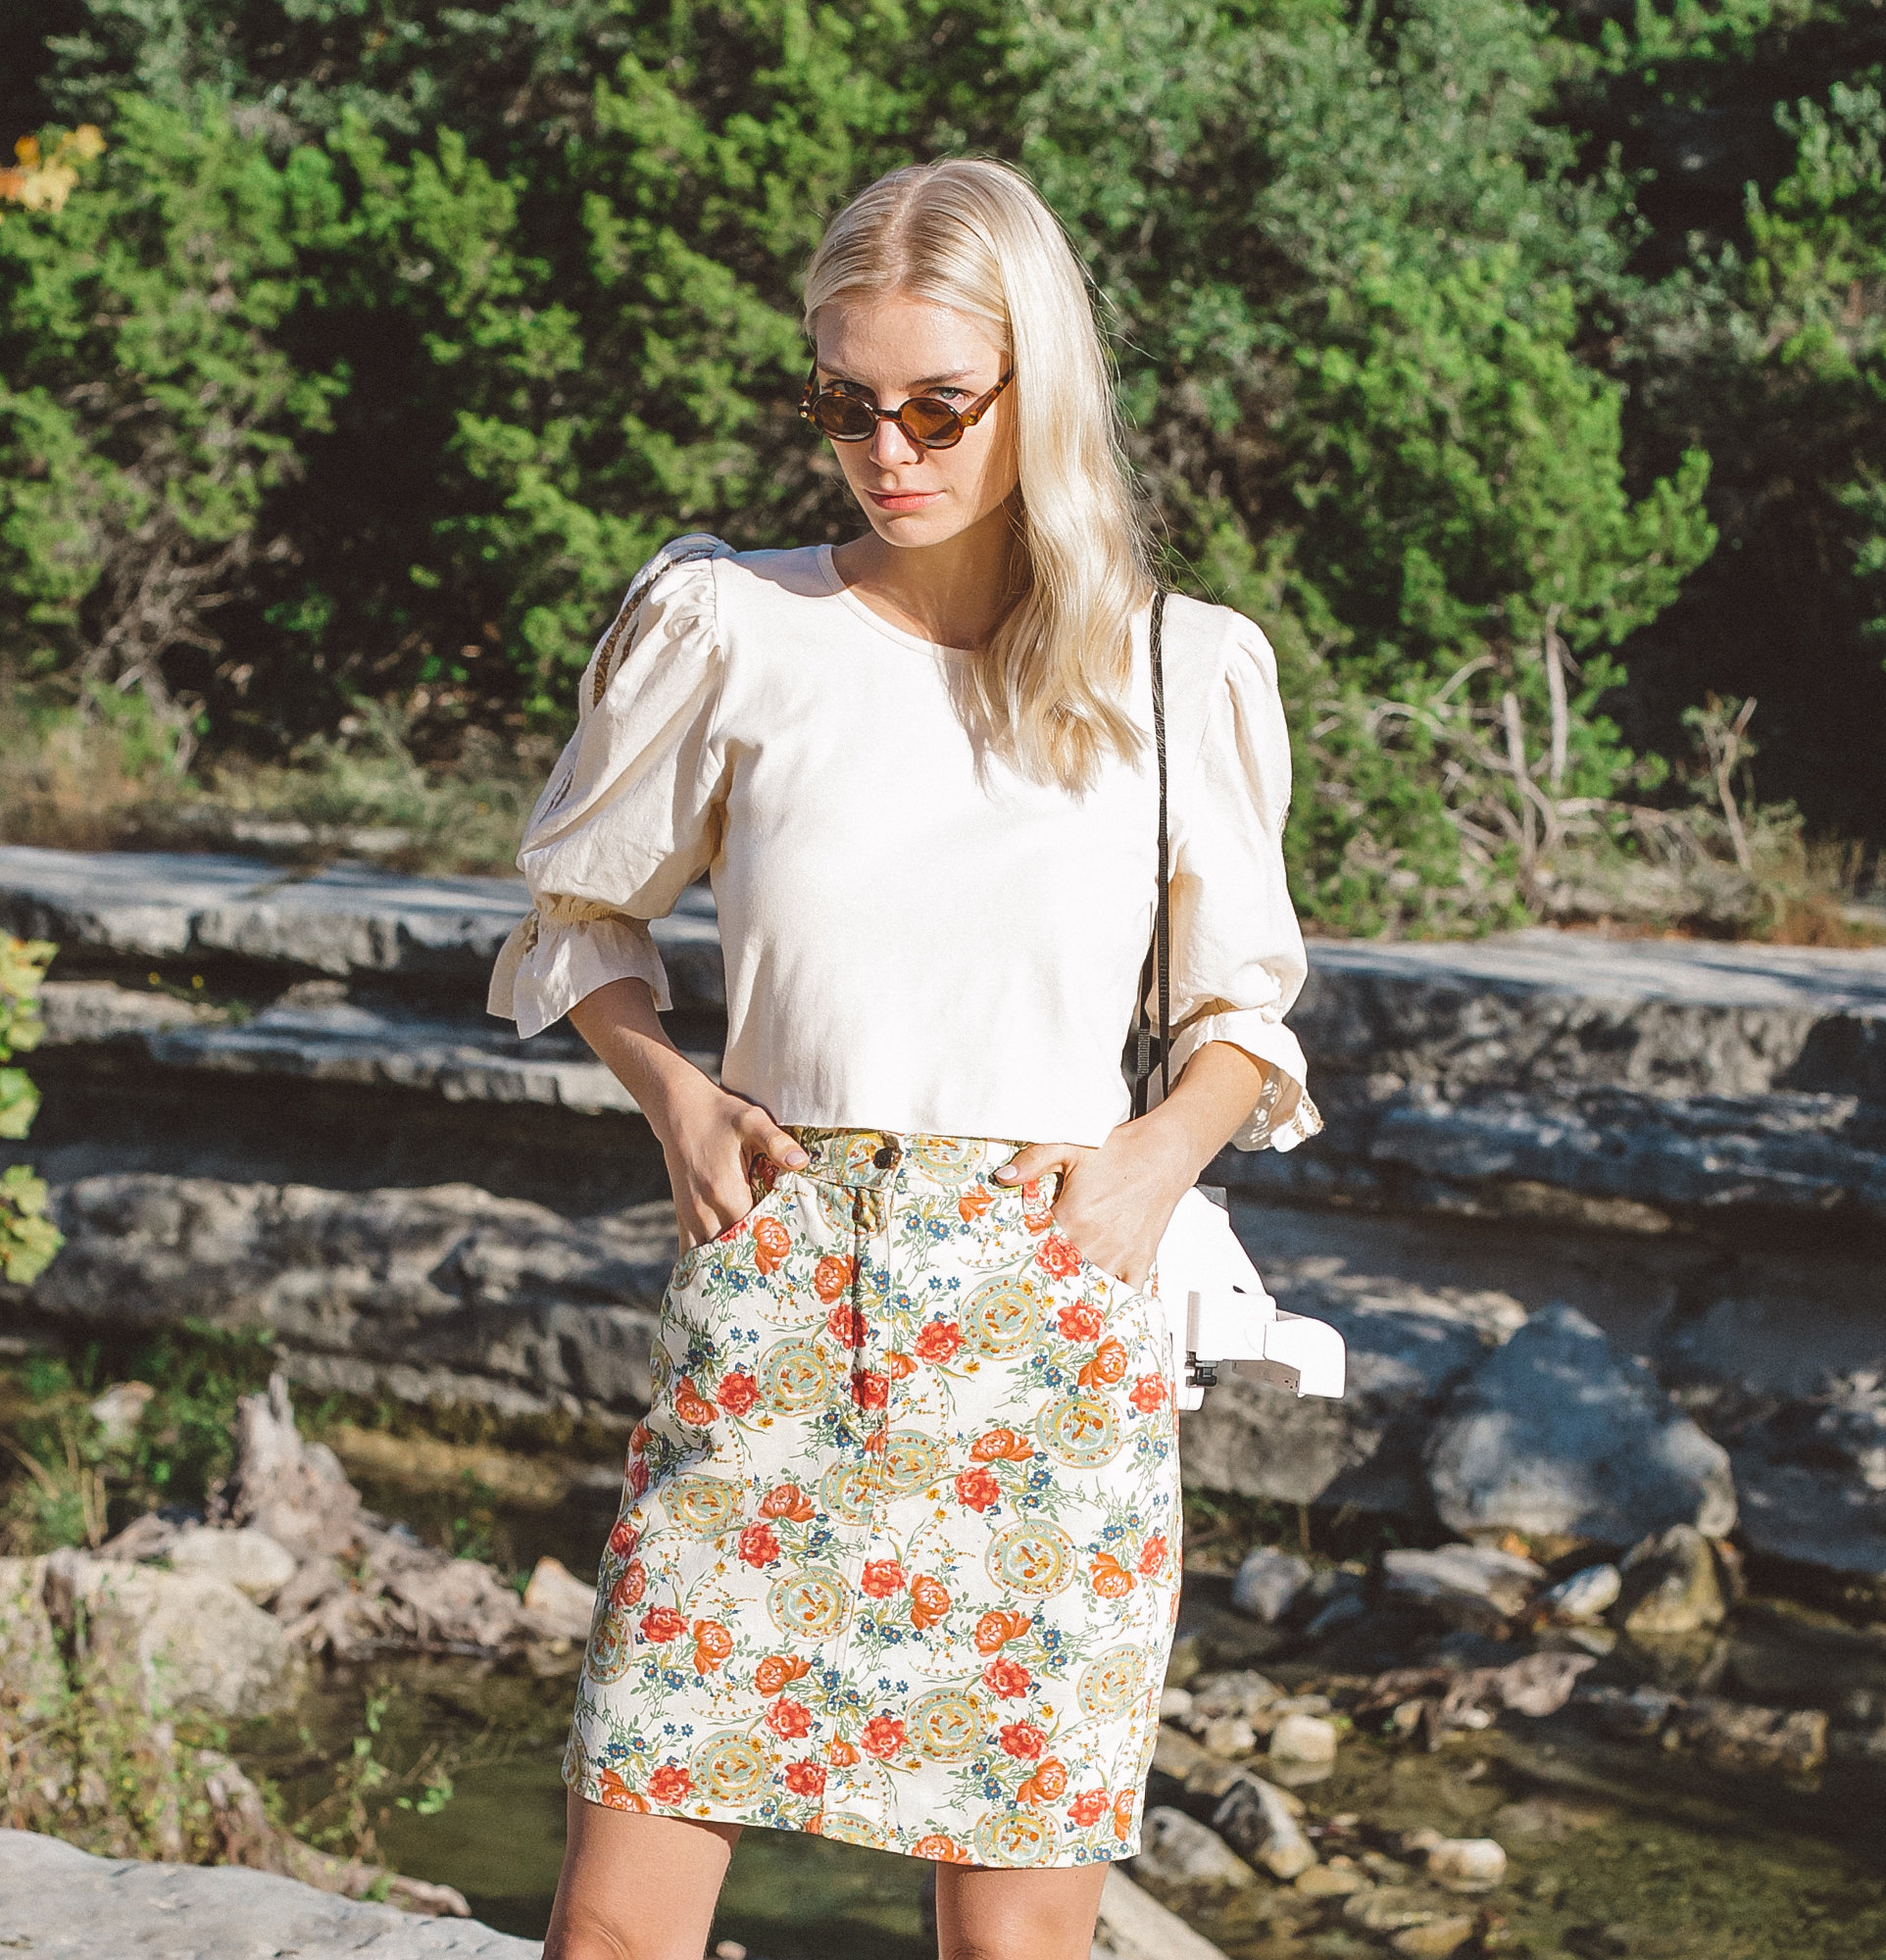 Pieceology-Vintage-1980s-Cotton-Floral-Printed-Pencil-Skirt-4.jpg